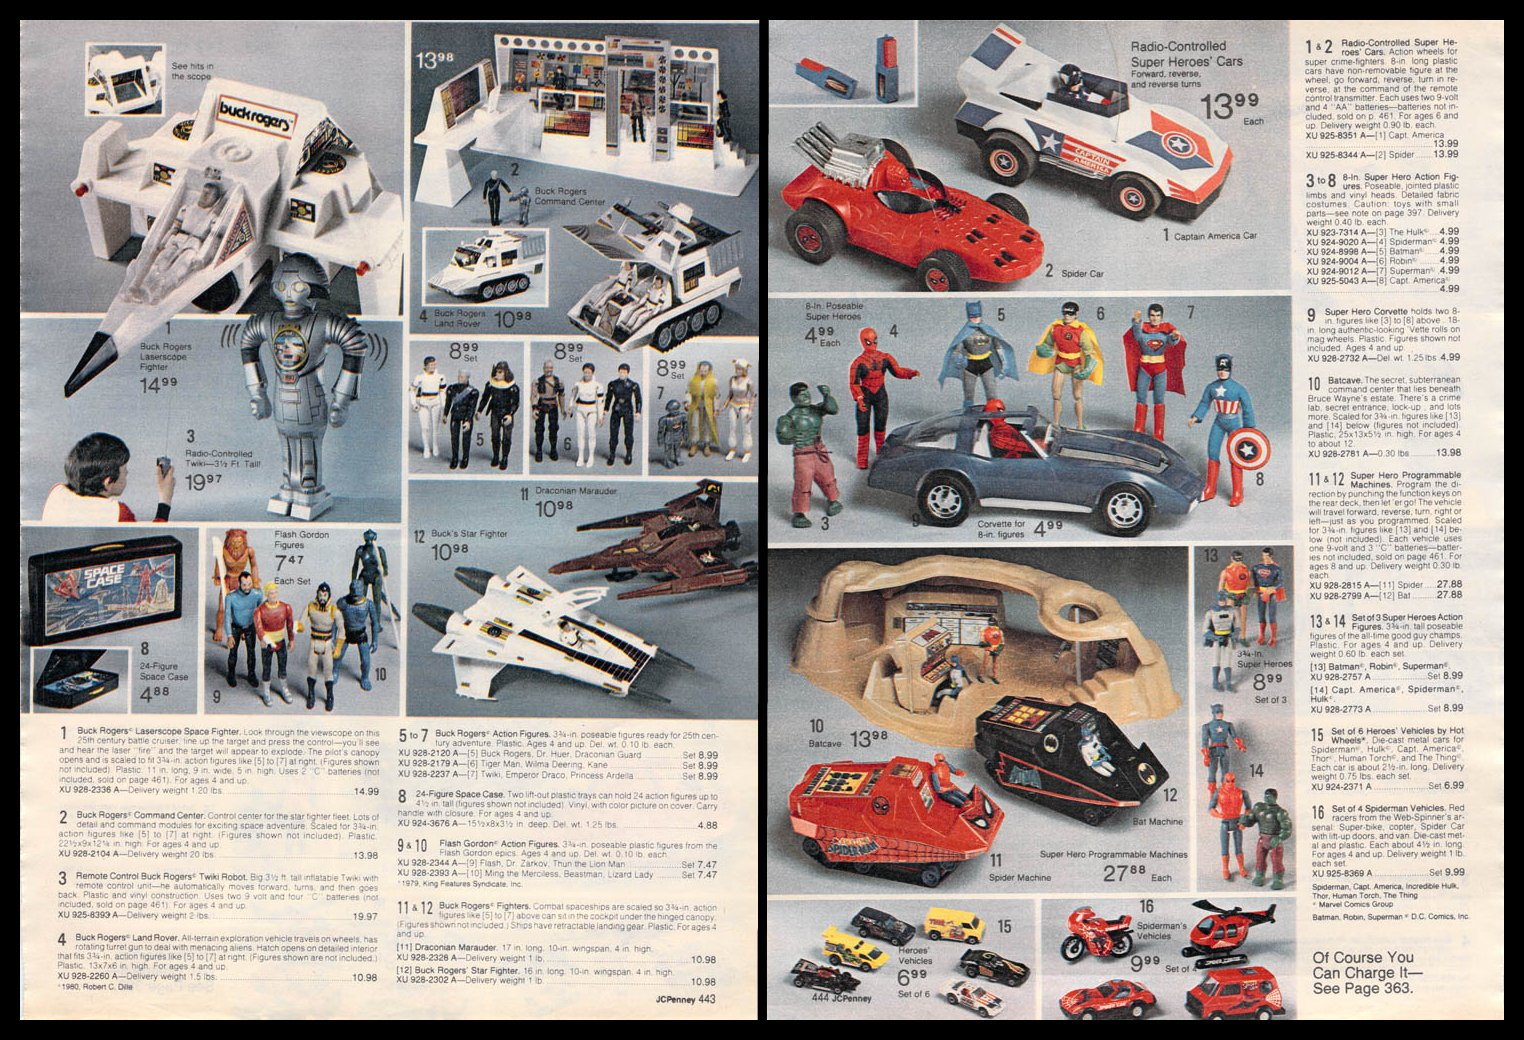 MONTGOMERY WARD 1981 CHRISTMAS CATALOG 80s TOYS, STAR WARS, FISHER PRICE+++